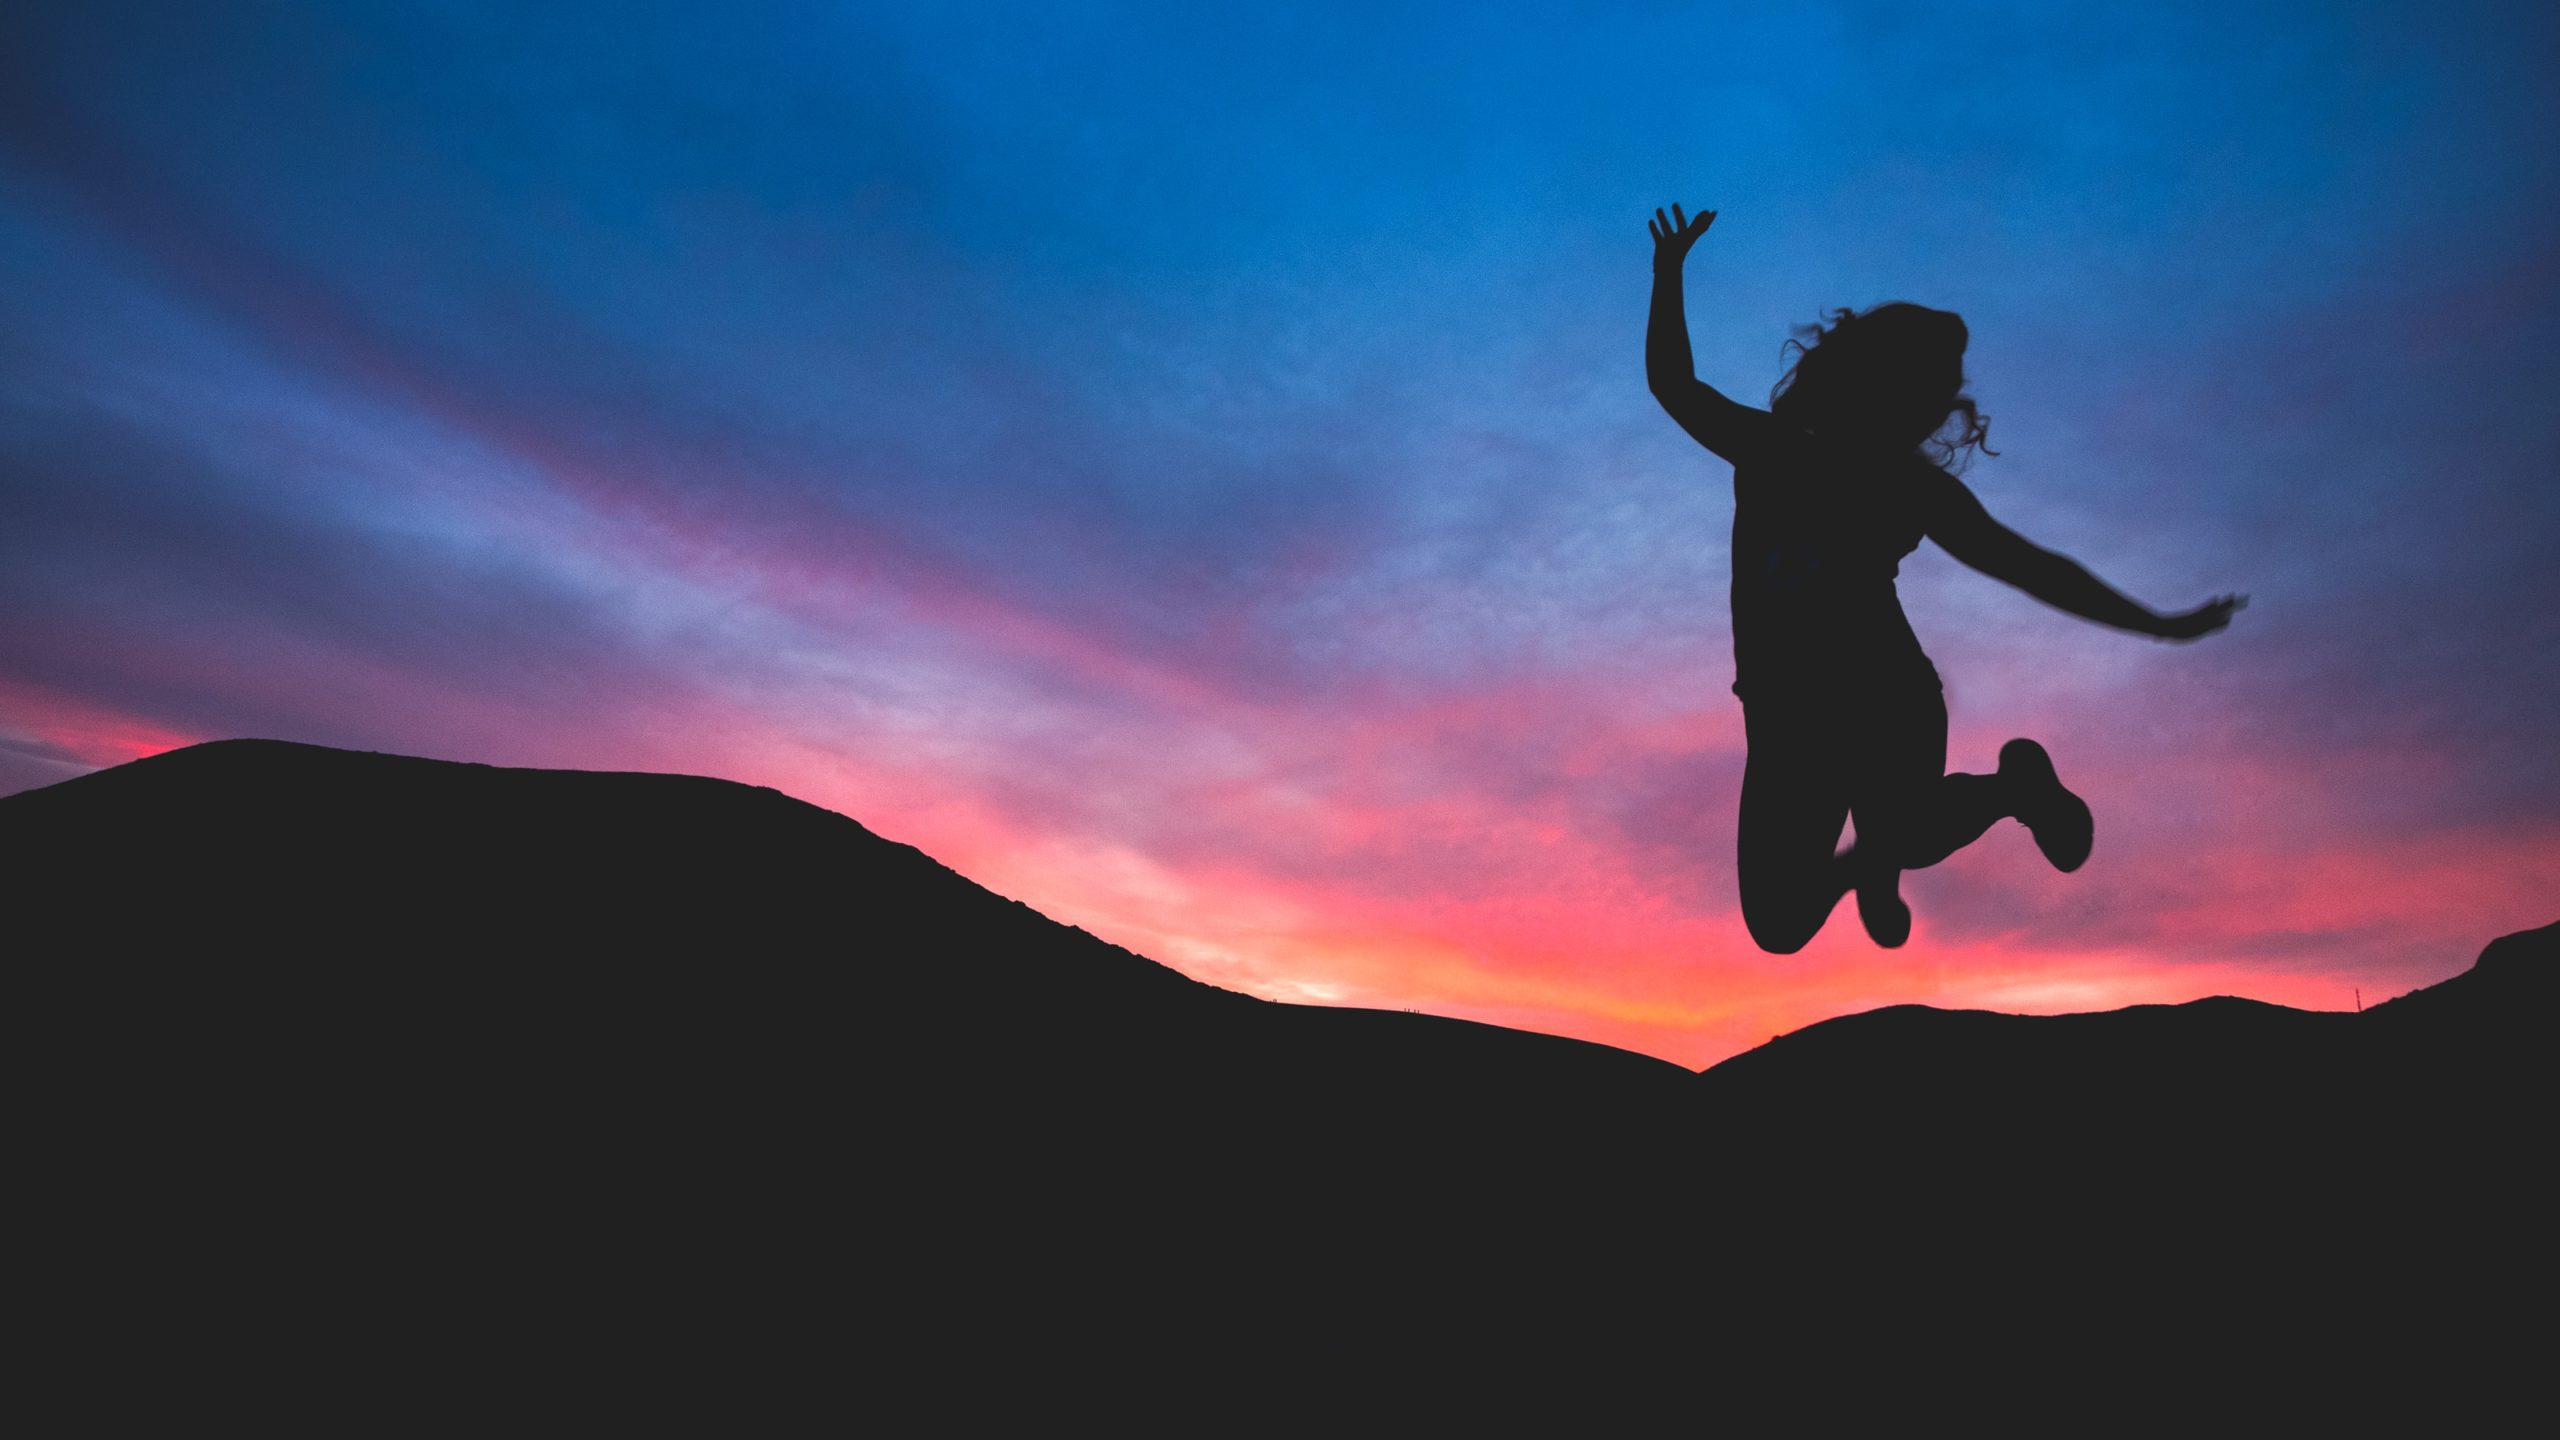 Person jumping in front of a sunset